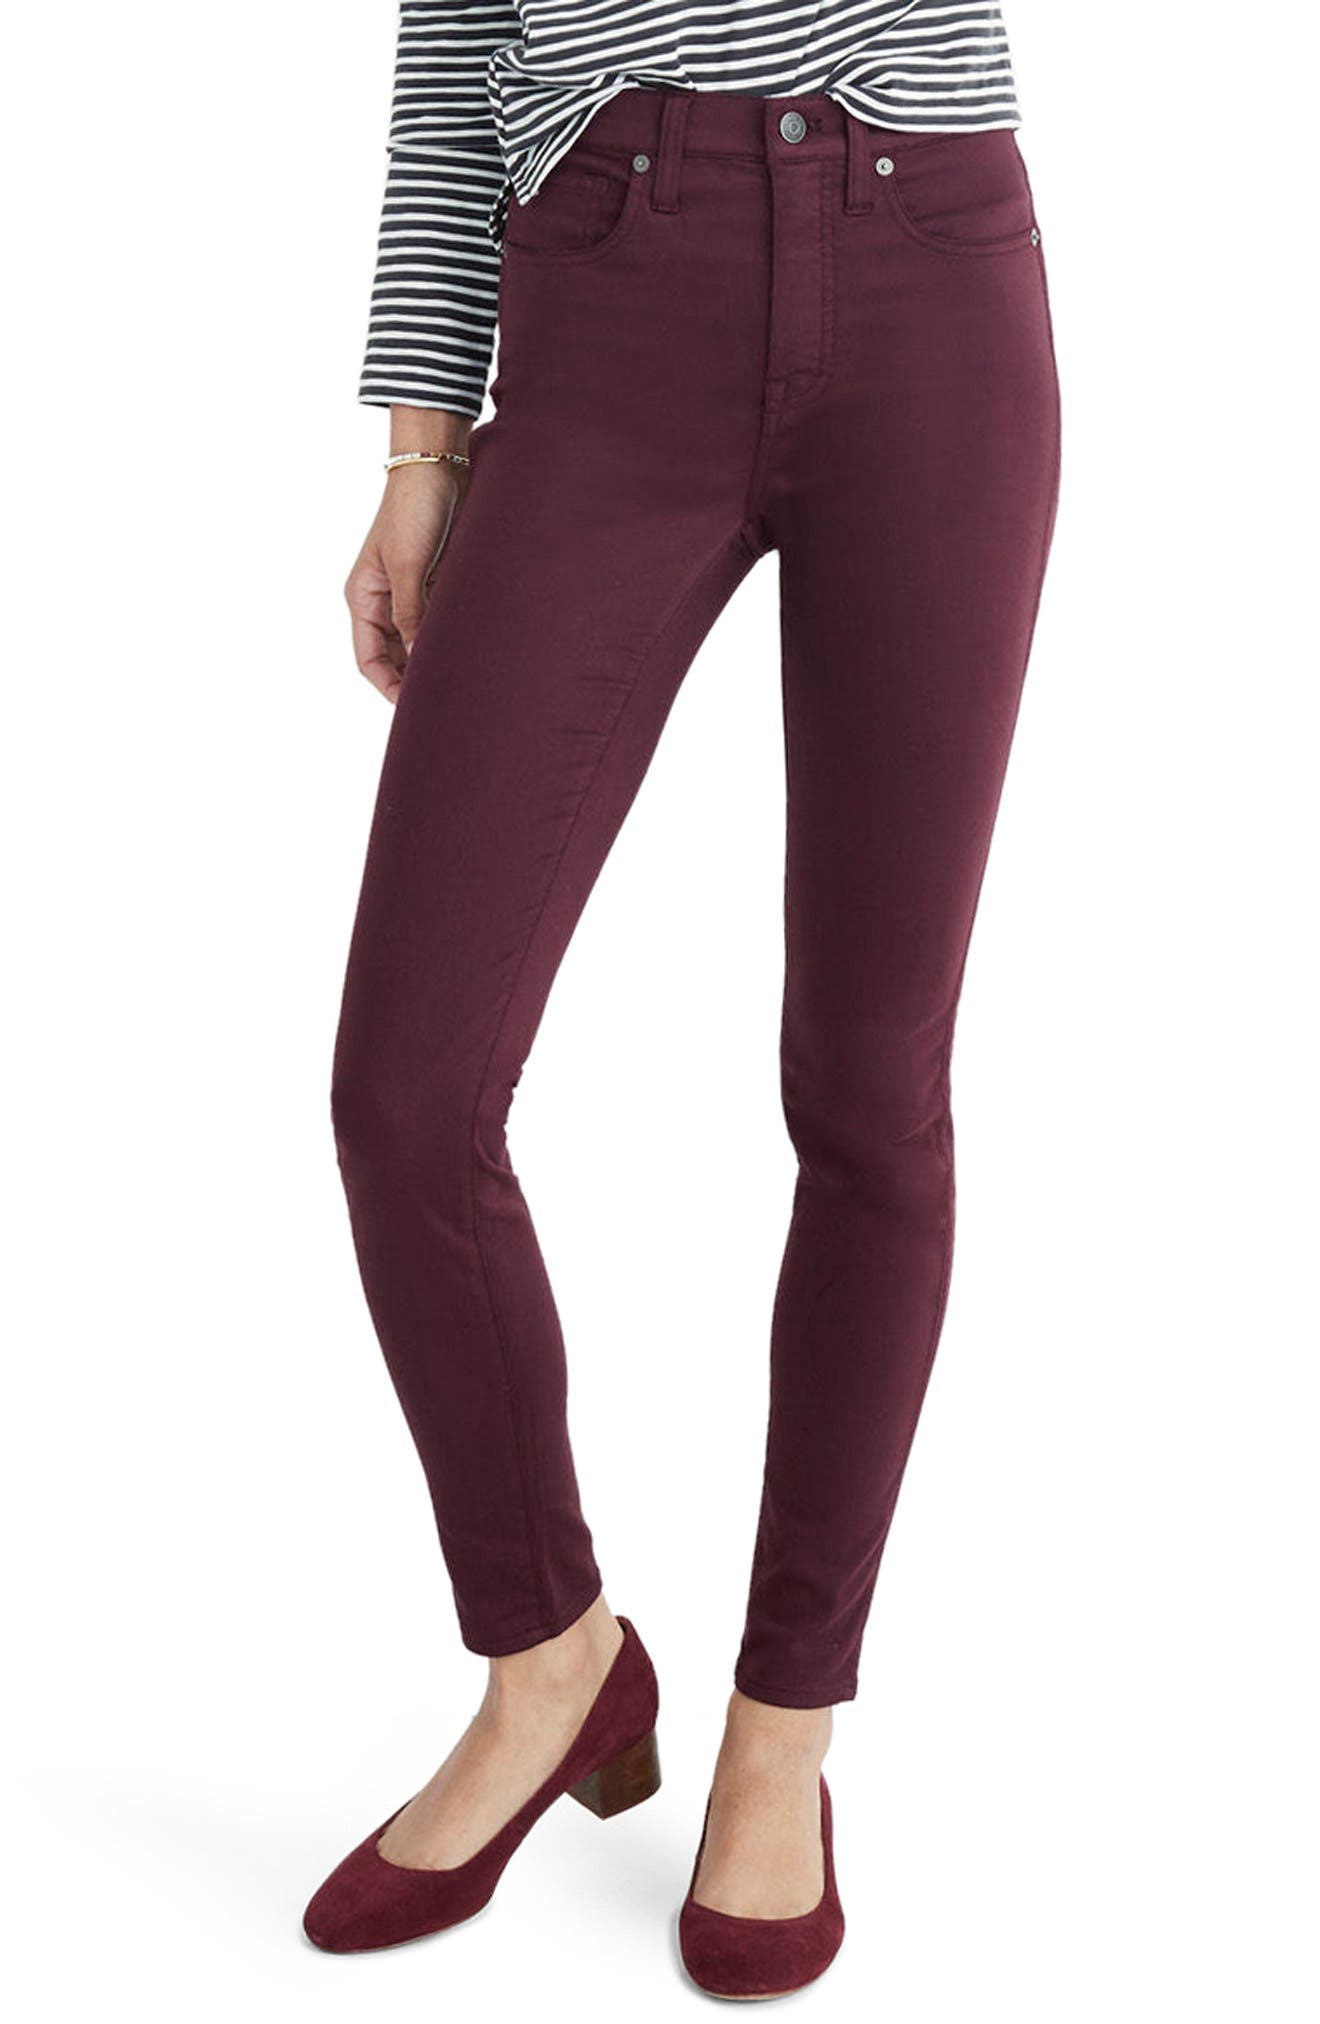 Alternate Image 1 Selected - Madewell 10-Inch High Waist Skinny Sateen Jeans